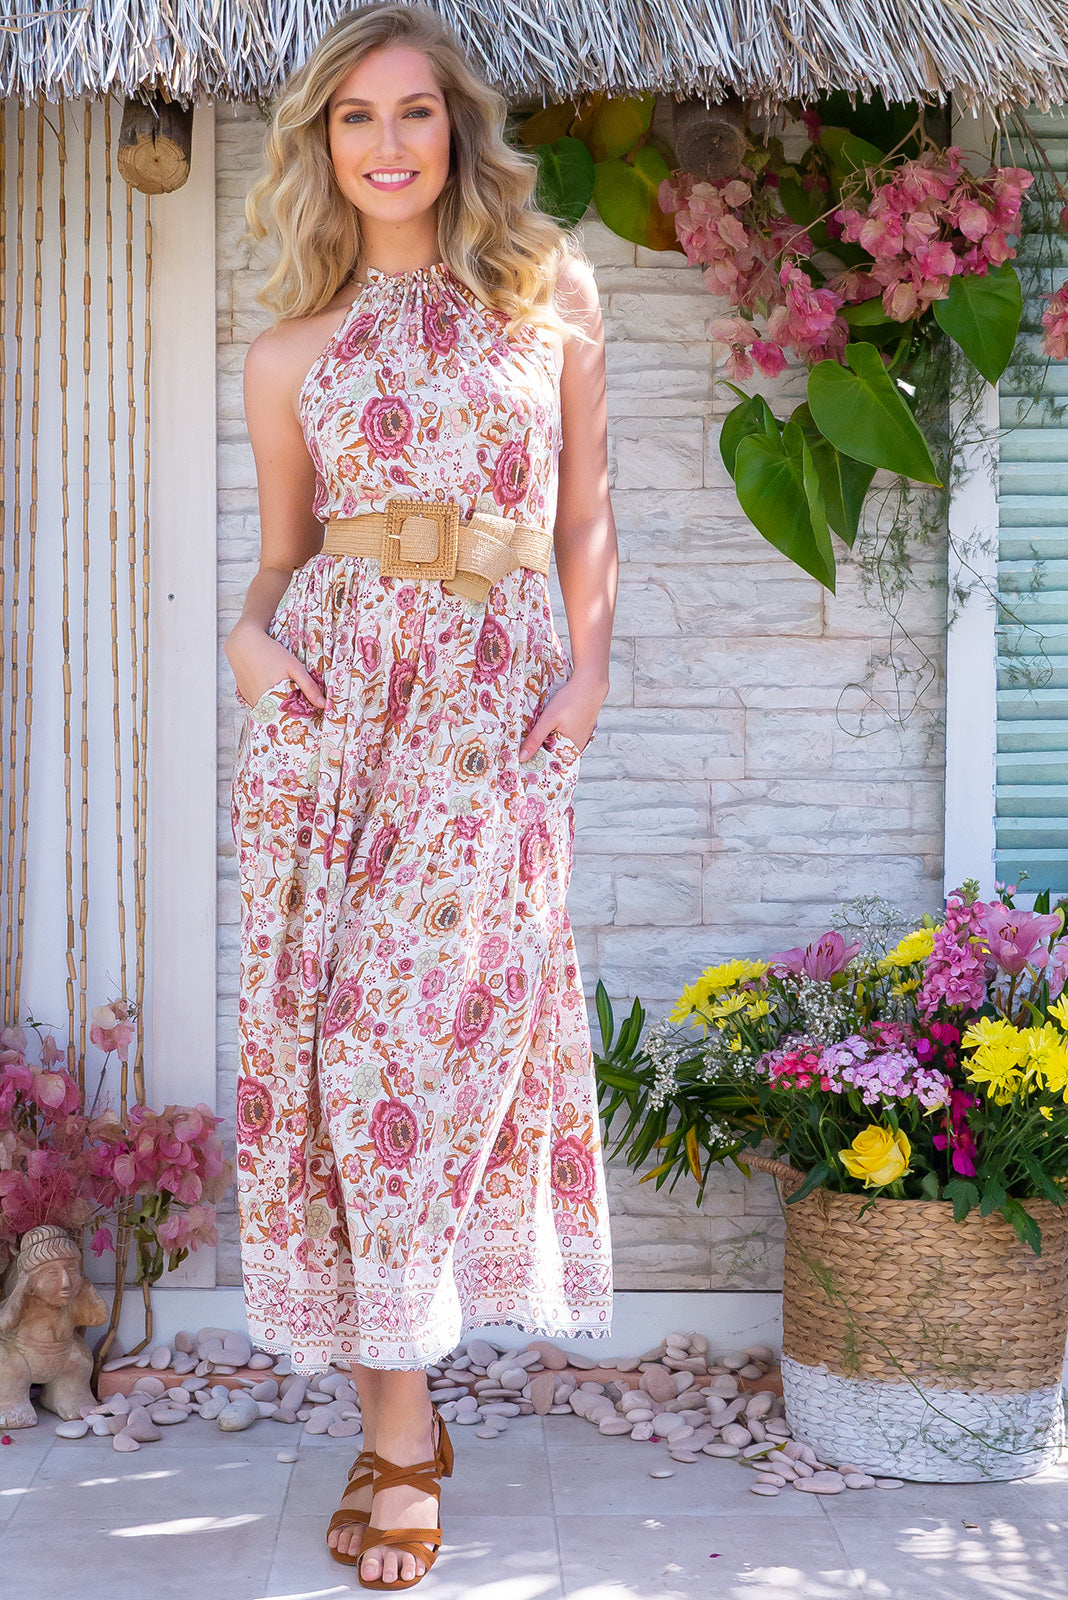 Noosa Tea Rose Maxi Dress features a high neck halter design with adjustable ties, a bohemian pink print, side pockets, tiered skirt, complimentary belt, border print and made in 100% rayon.